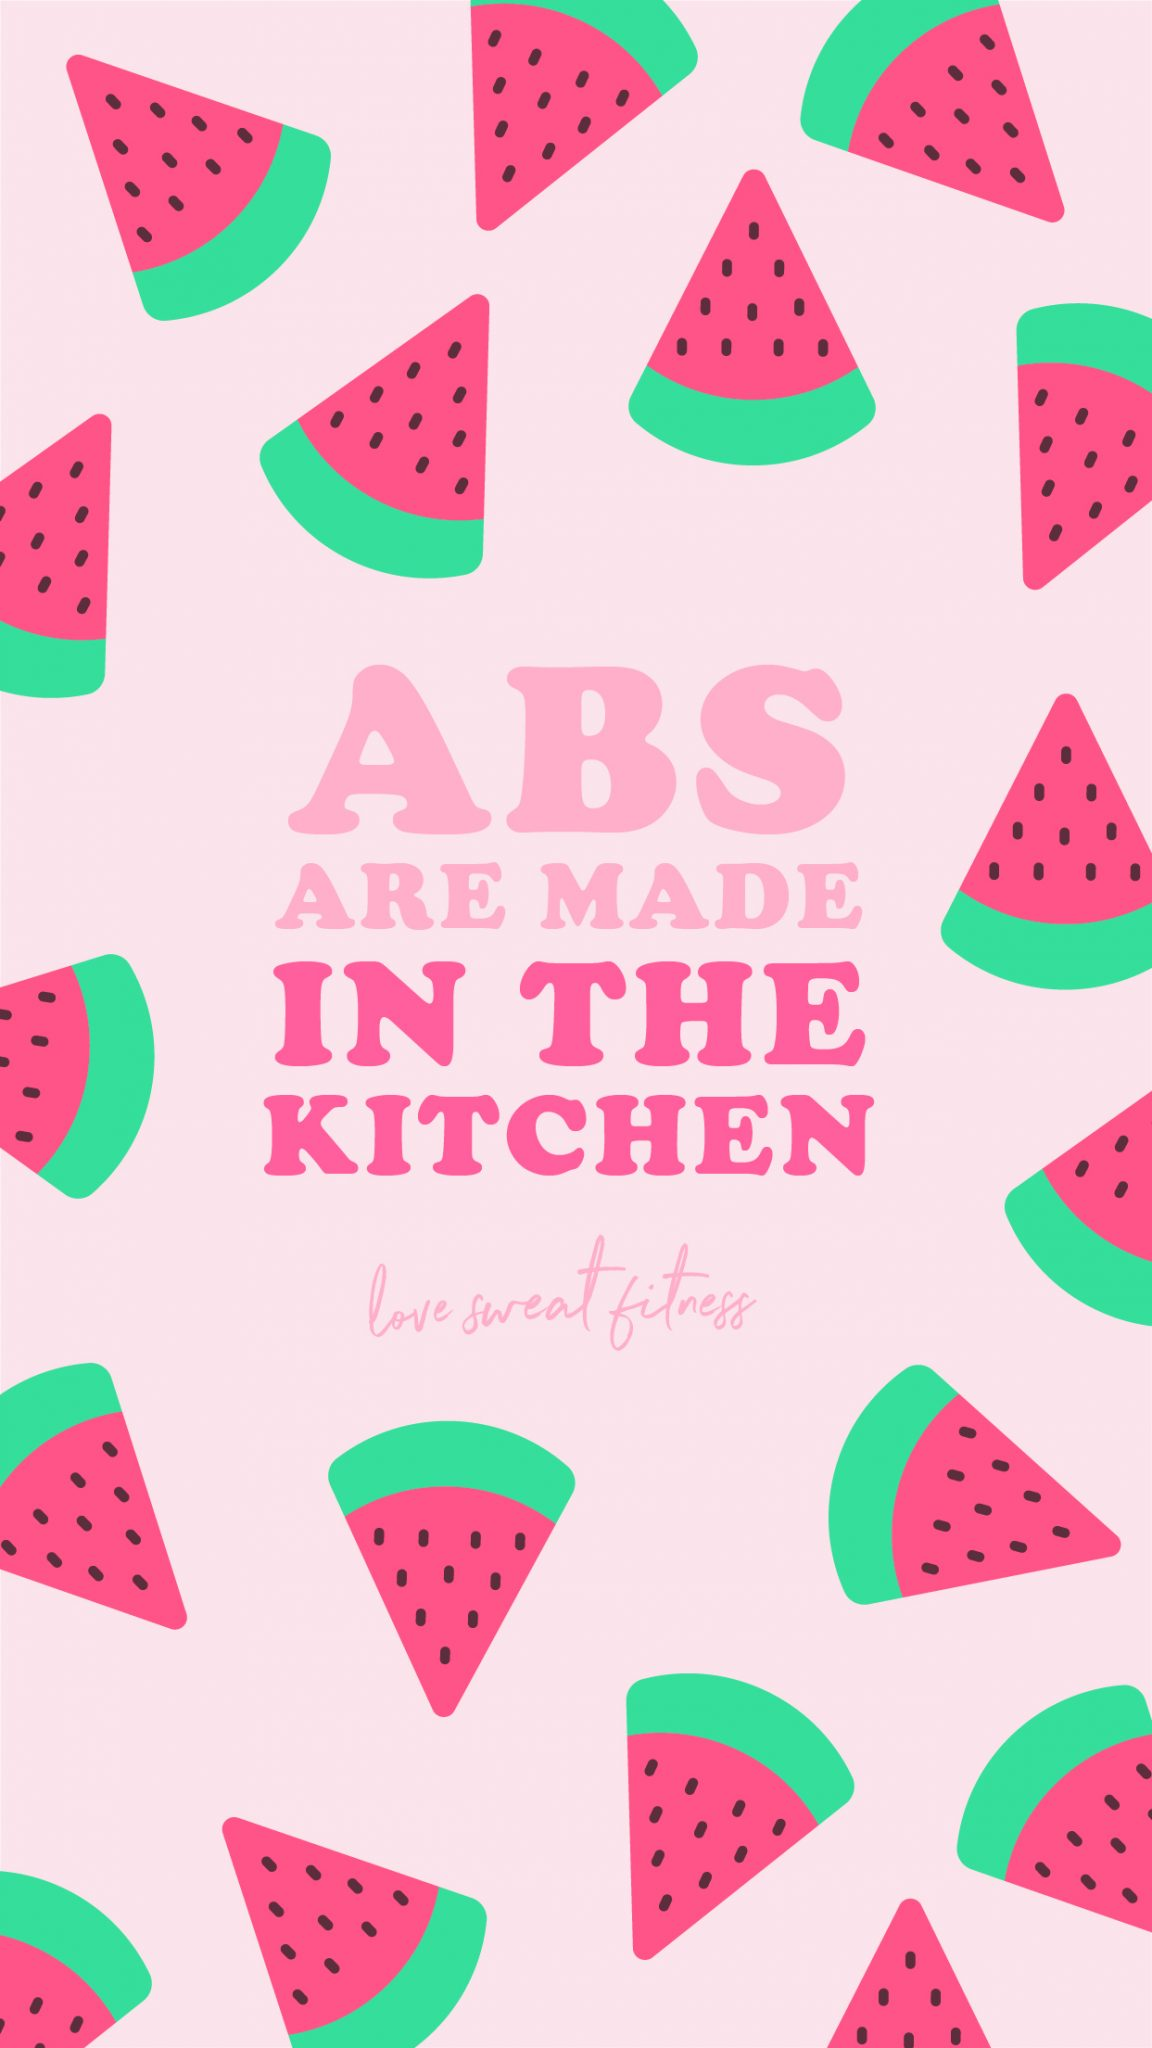 abs are make in the kitchen wallpaper